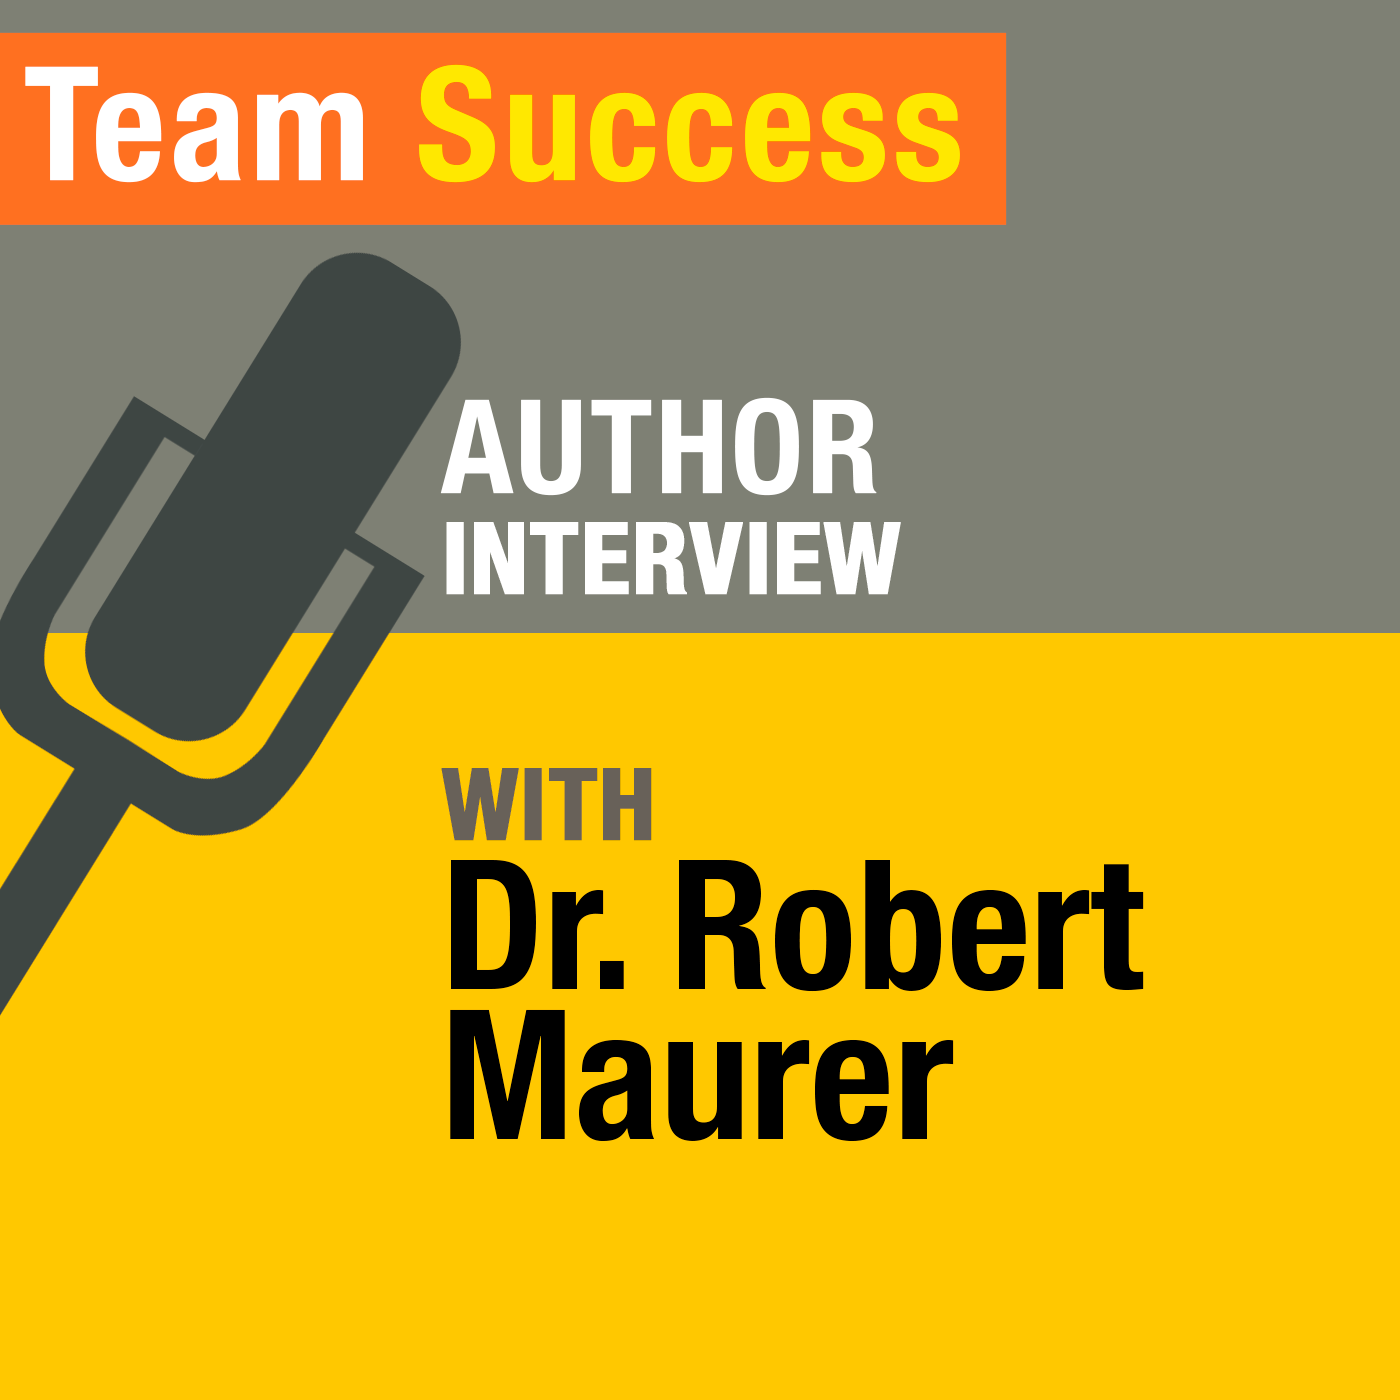 An Interview With Dr. Robert Maurer - Team Success Podcast